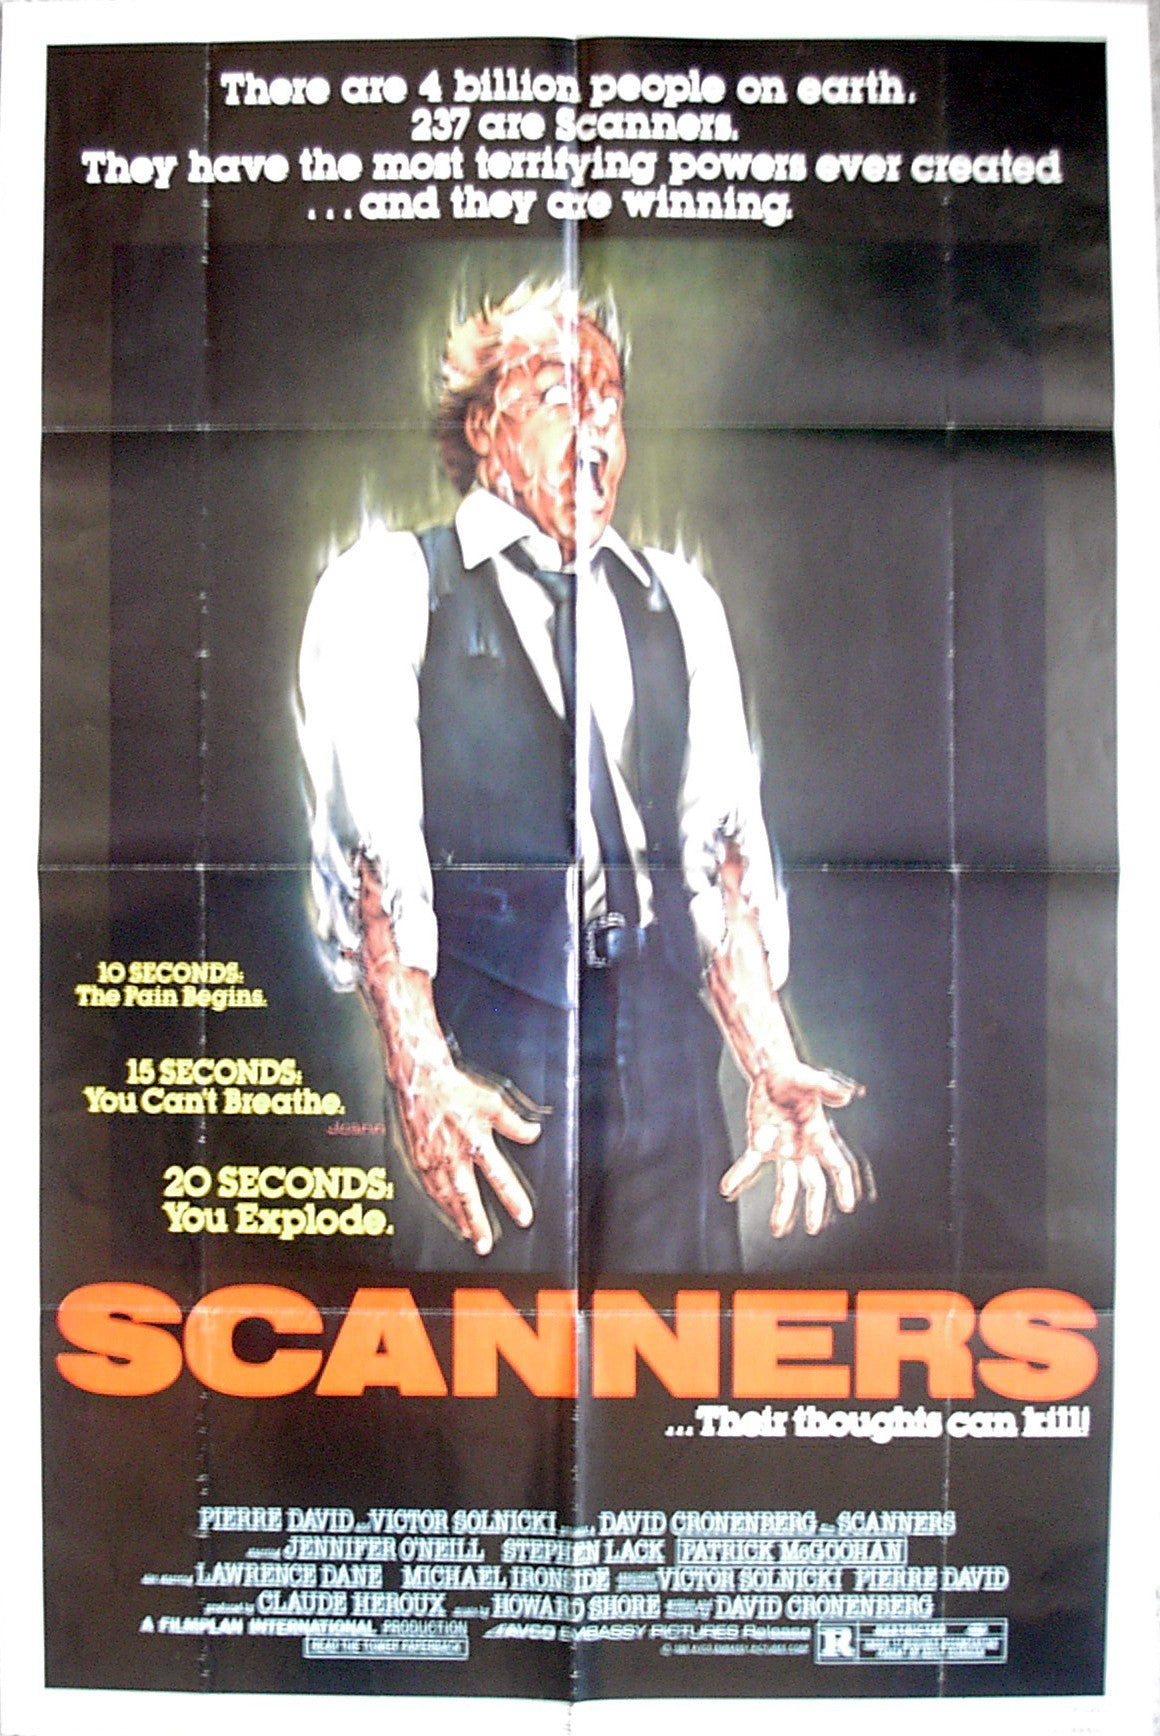 SCANNERS - US one-sheet poster